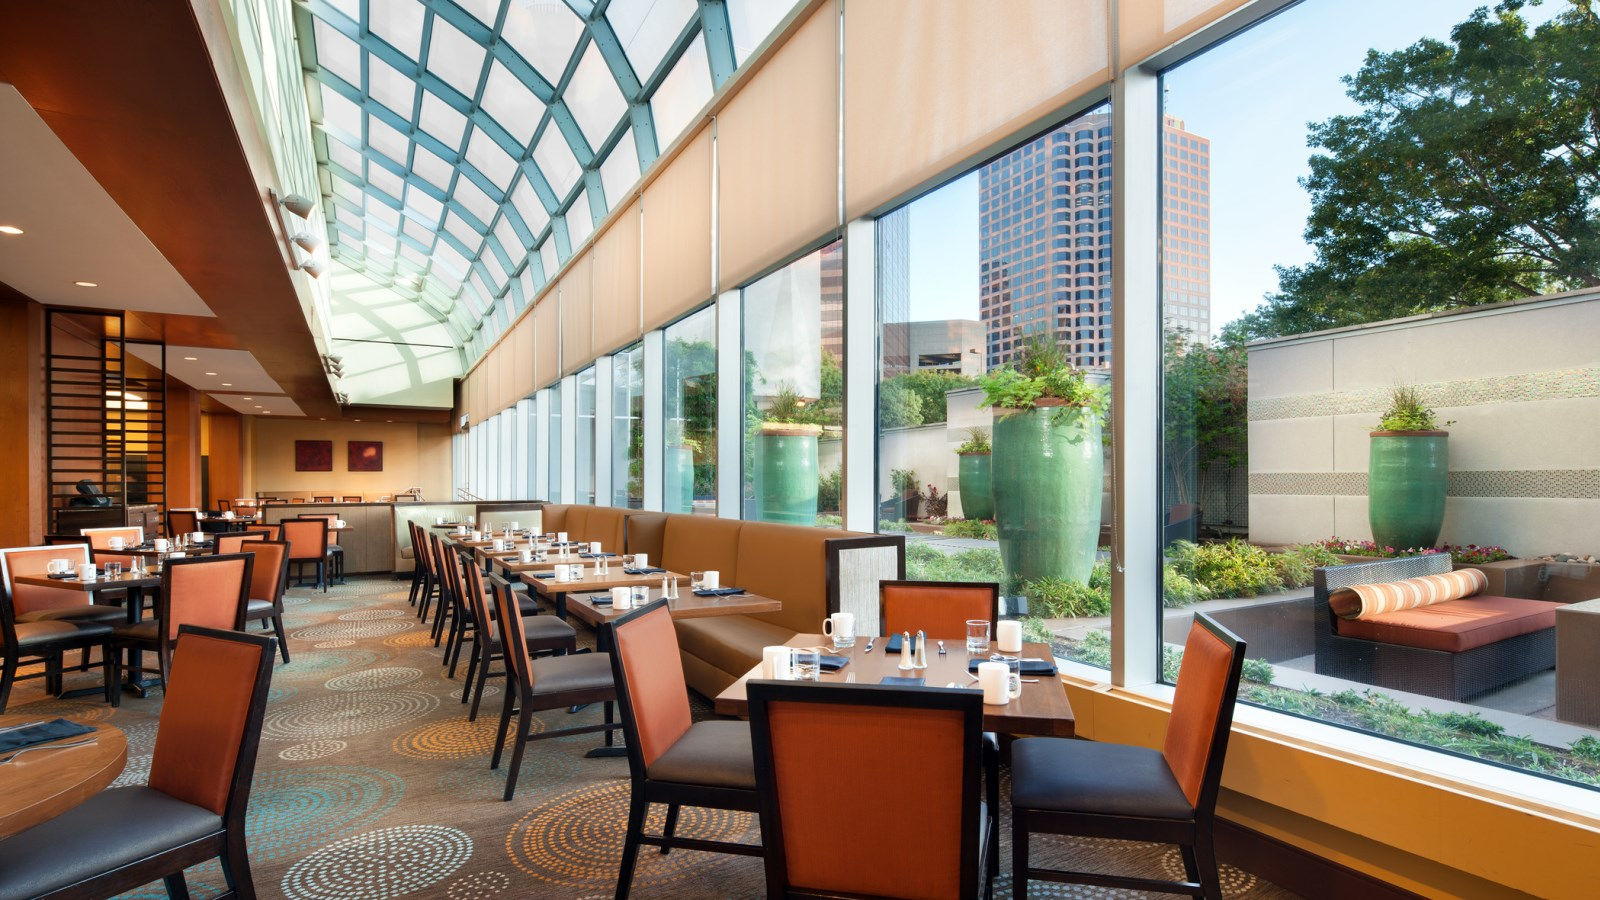 Dallas American Restaurants Kitchen Table Restaurant